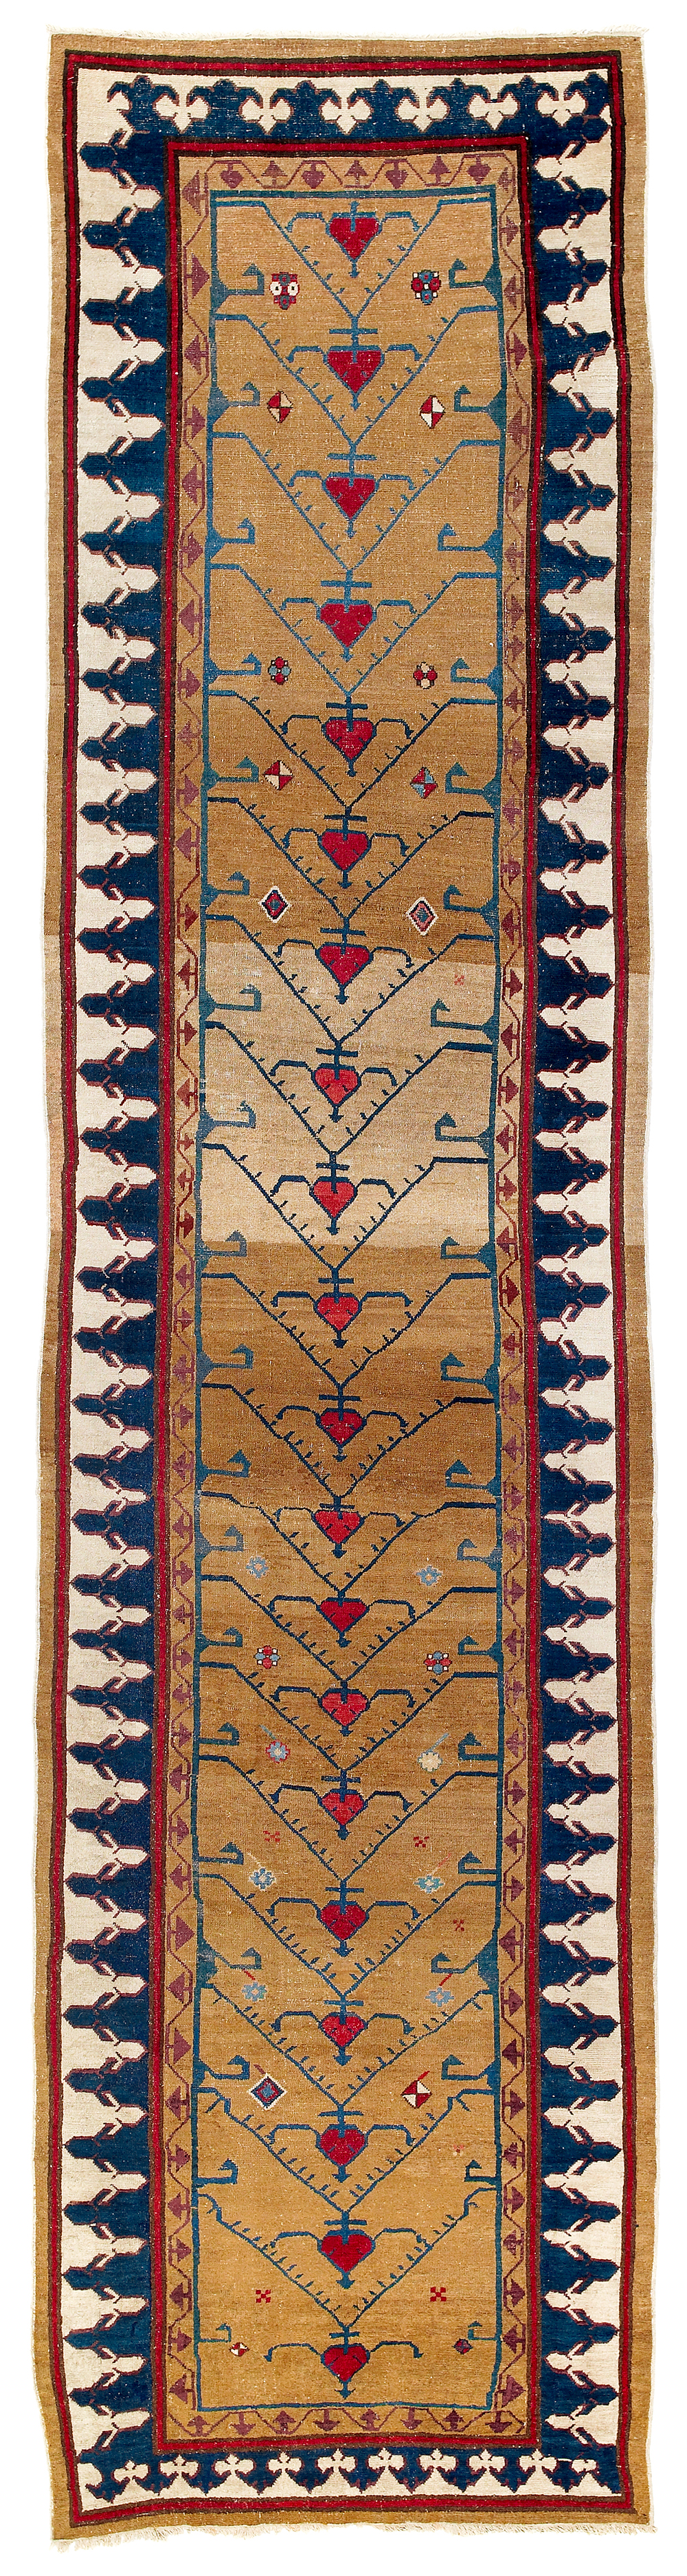 Lot 156, Northwest Persian runner, Azerbaijan, 18th century, 103 x 417 cm, estimate €58,000